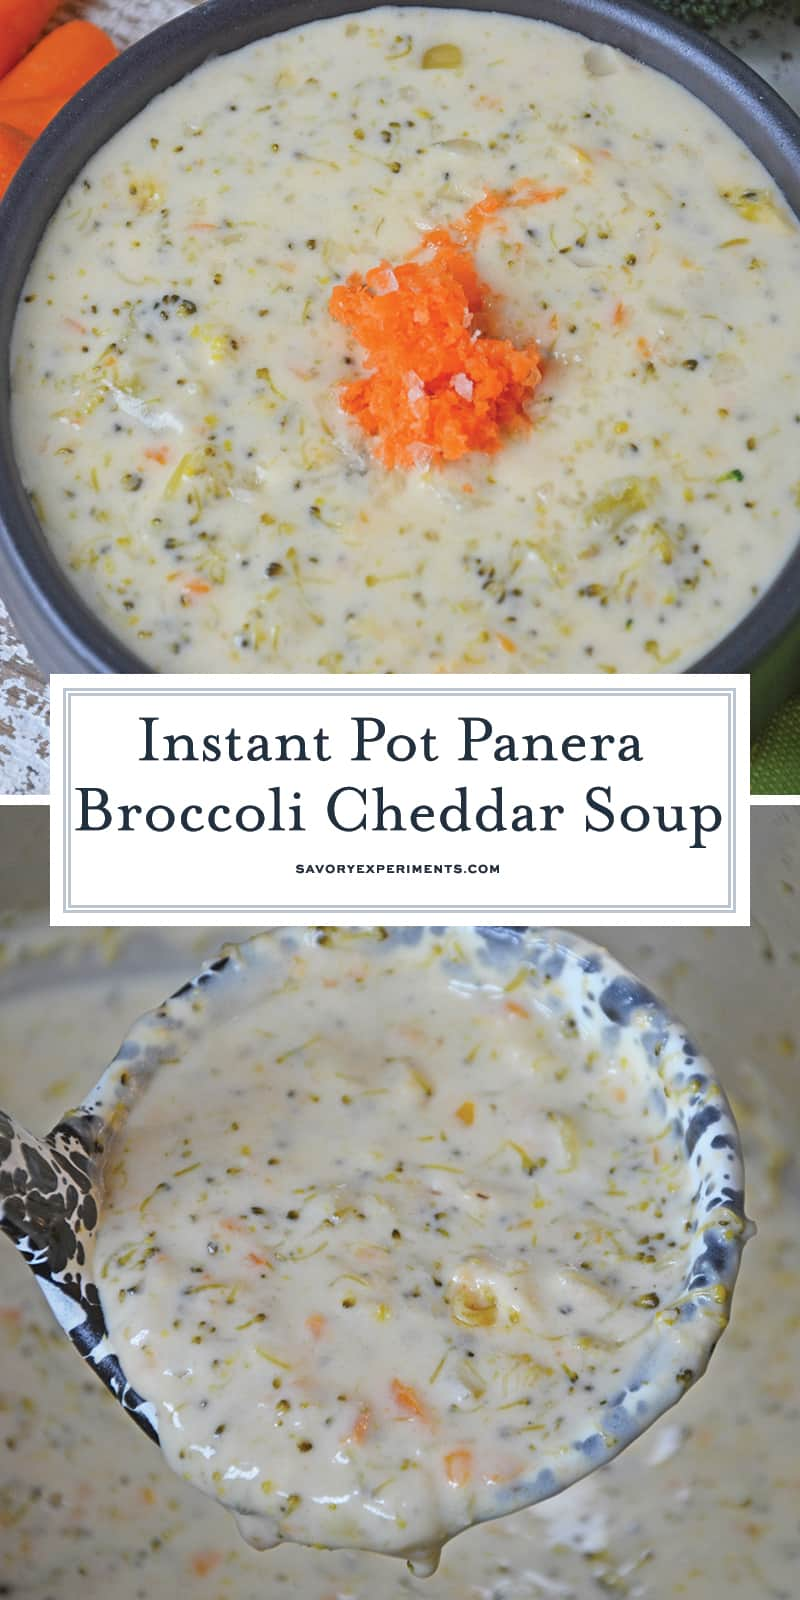 Instant Pot Broccoli Cheddar Soup for Pinterest